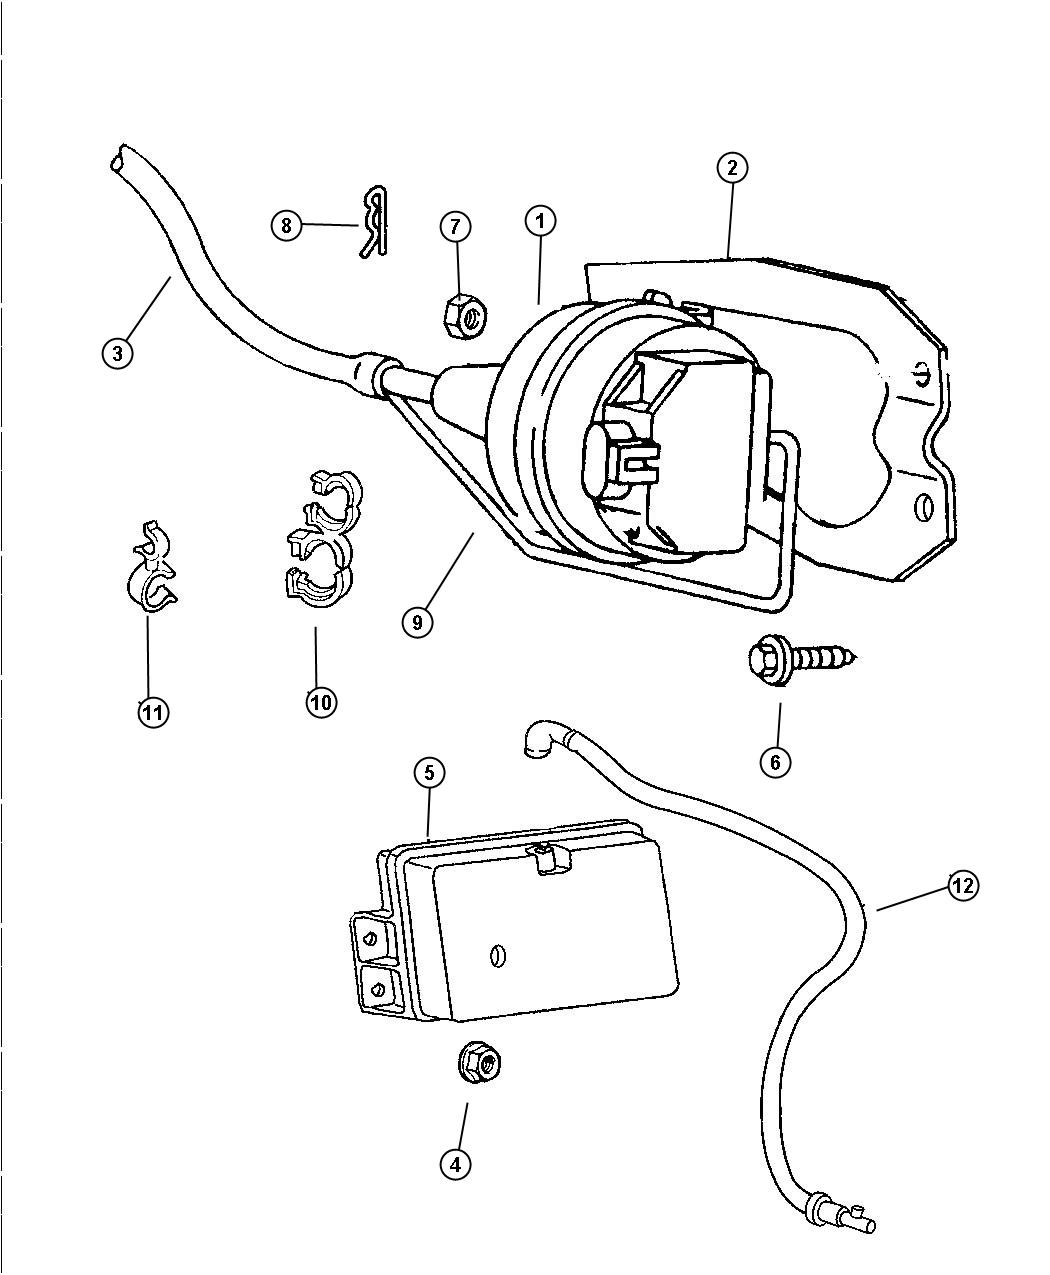 Dodge Cruise Control Diagram : Dodge cruise control servo wiring imageresizertool